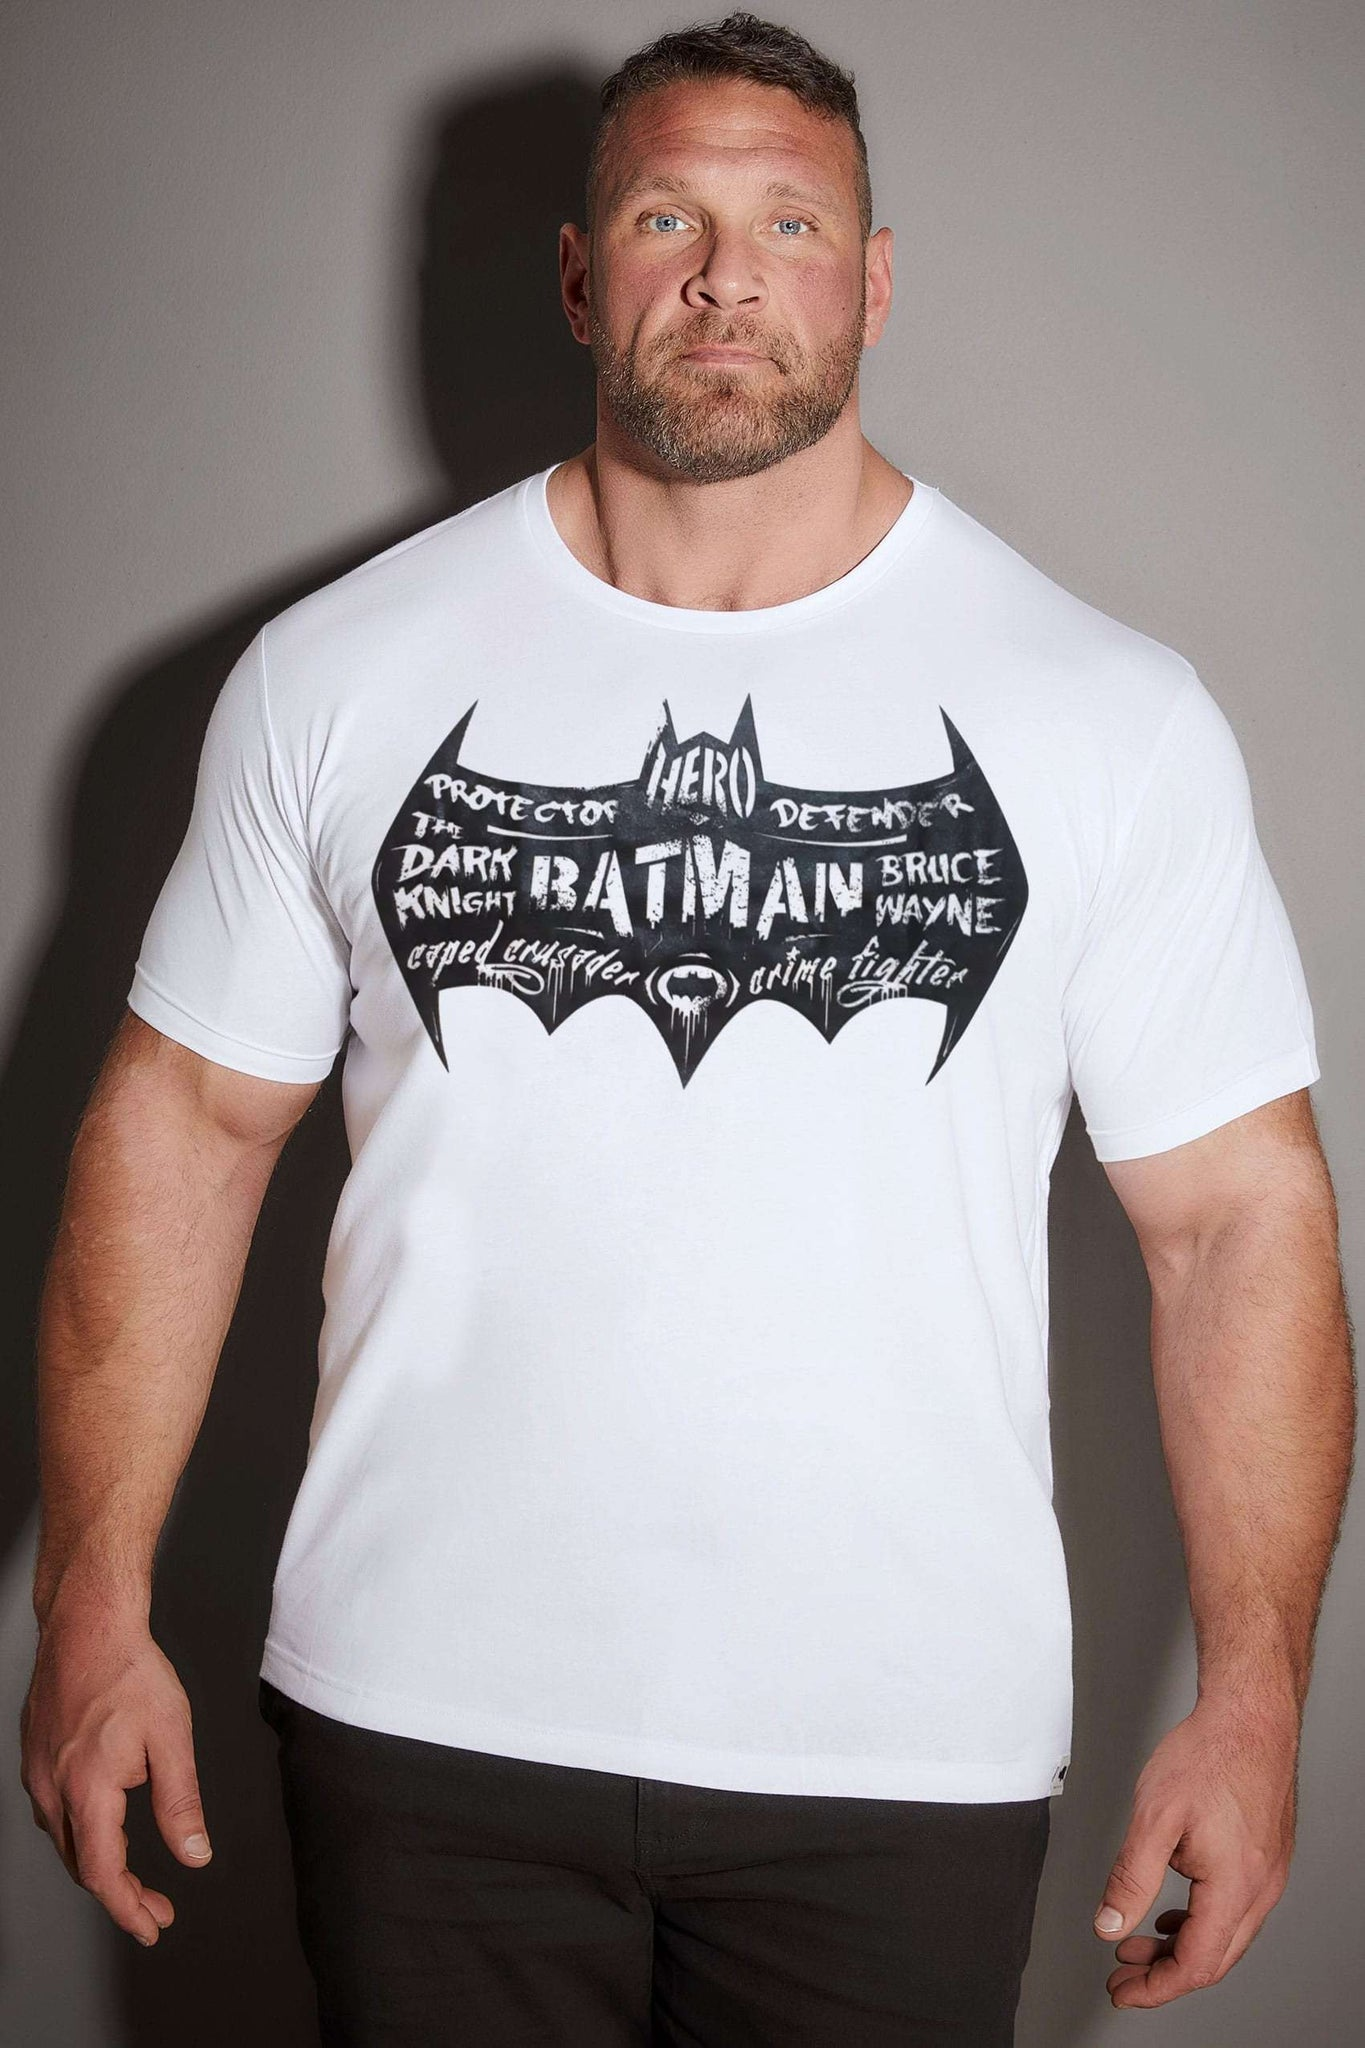 Batman Definition t-shirt SugarCane1977 tshirt shirt t-shirt tee - SugarCane1977